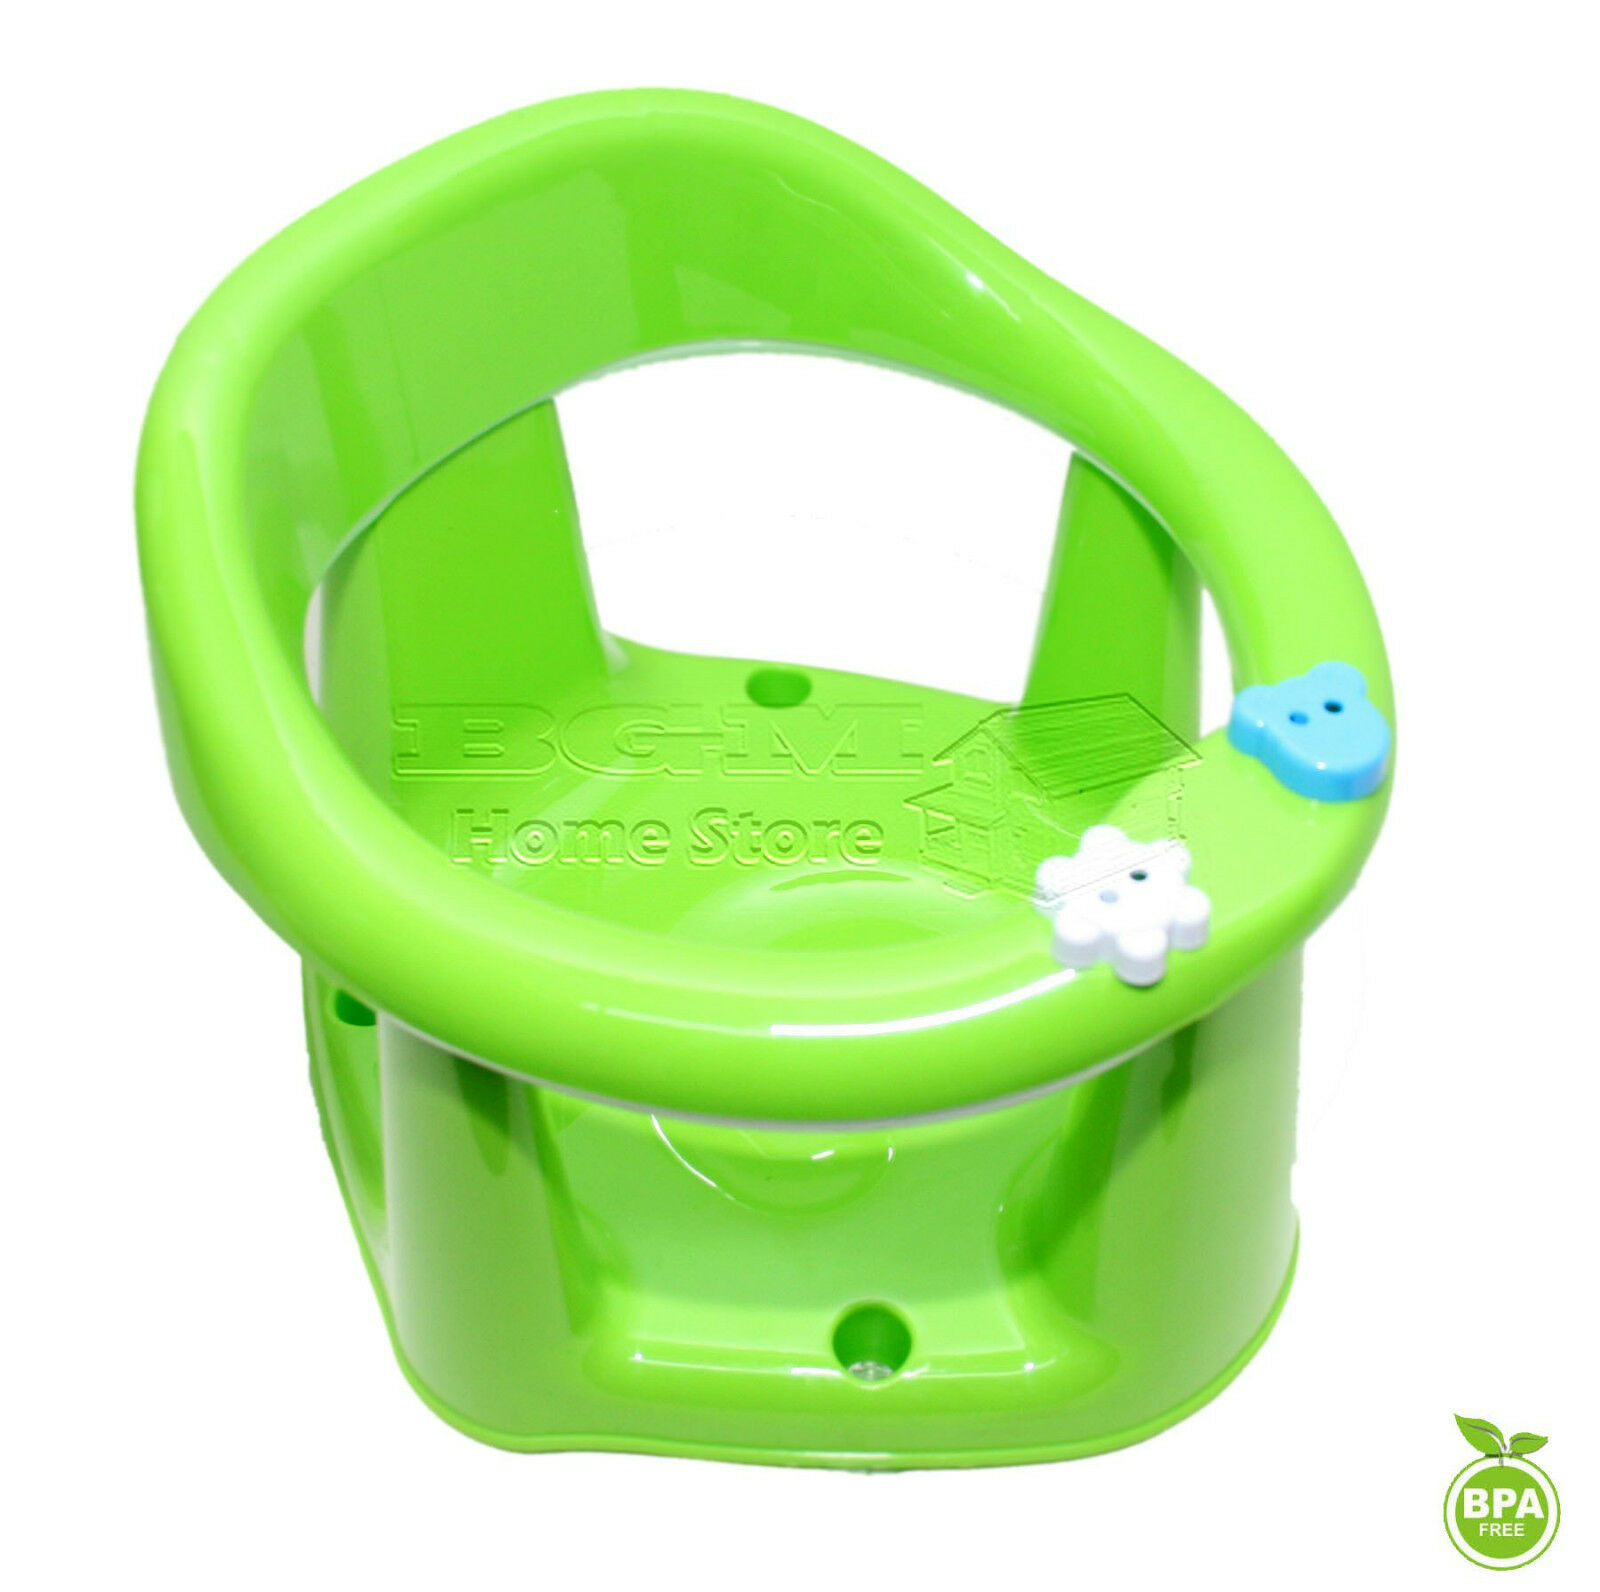 3 in 1 baby bath dining activity play seat kids tub ring seat chair green mwr ebay. Black Bedroom Furniture Sets. Home Design Ideas